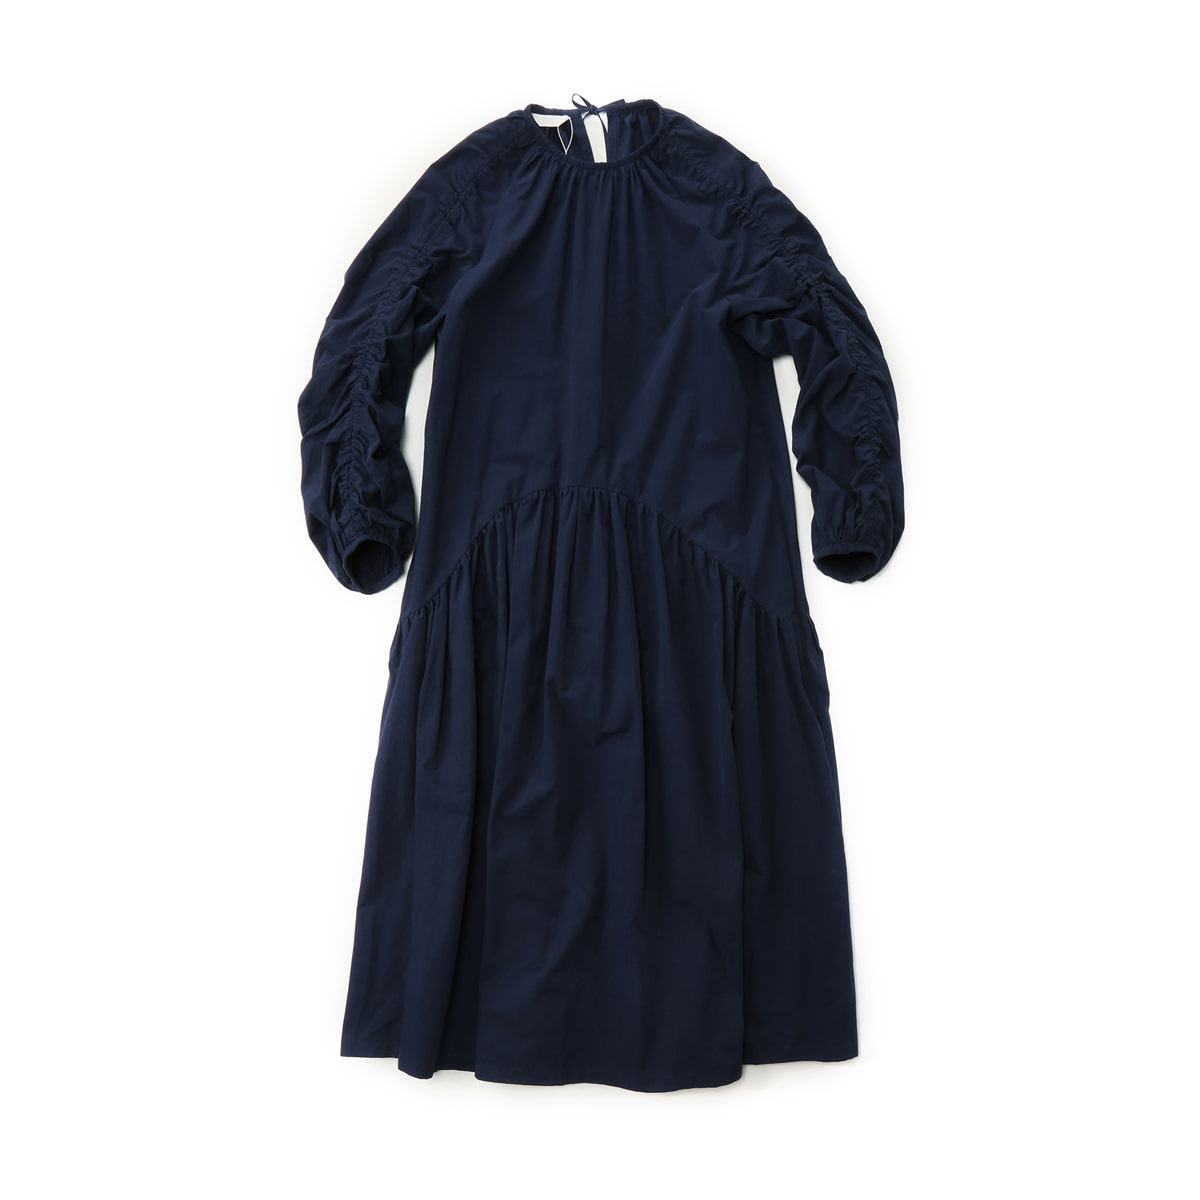 [MUSED] ONIRIQUE LUCING DRESS 'NAVY'